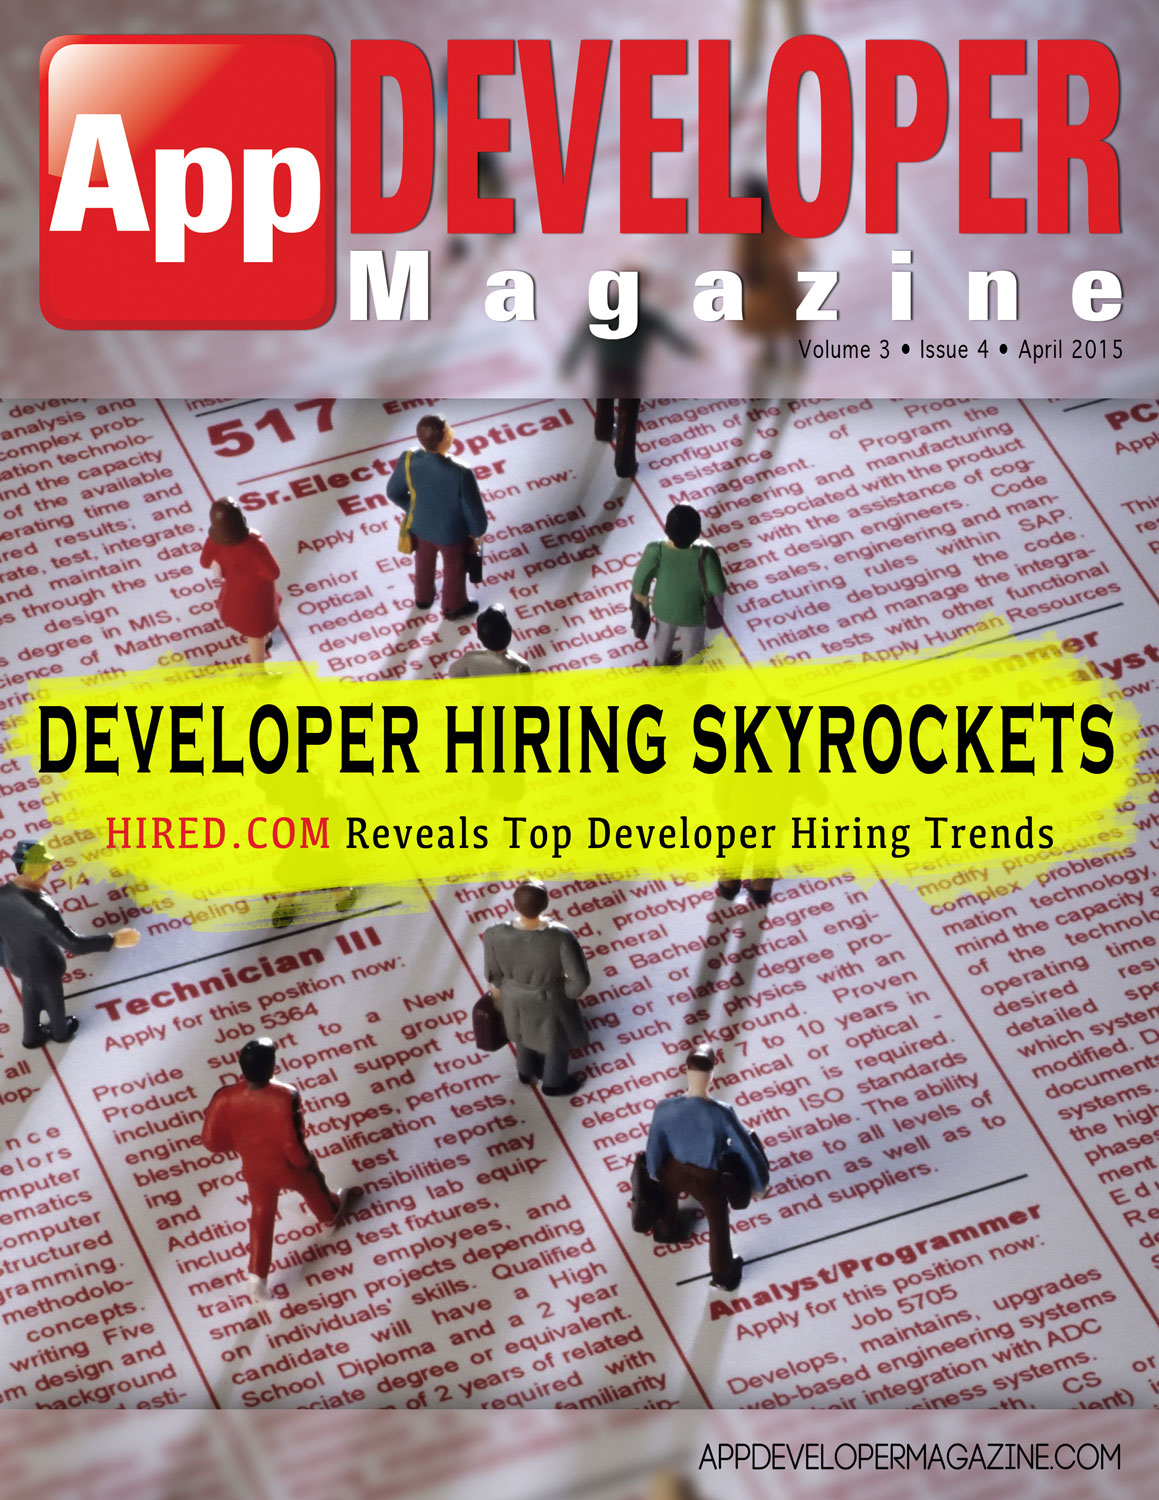 App Developer Magazine April 2015